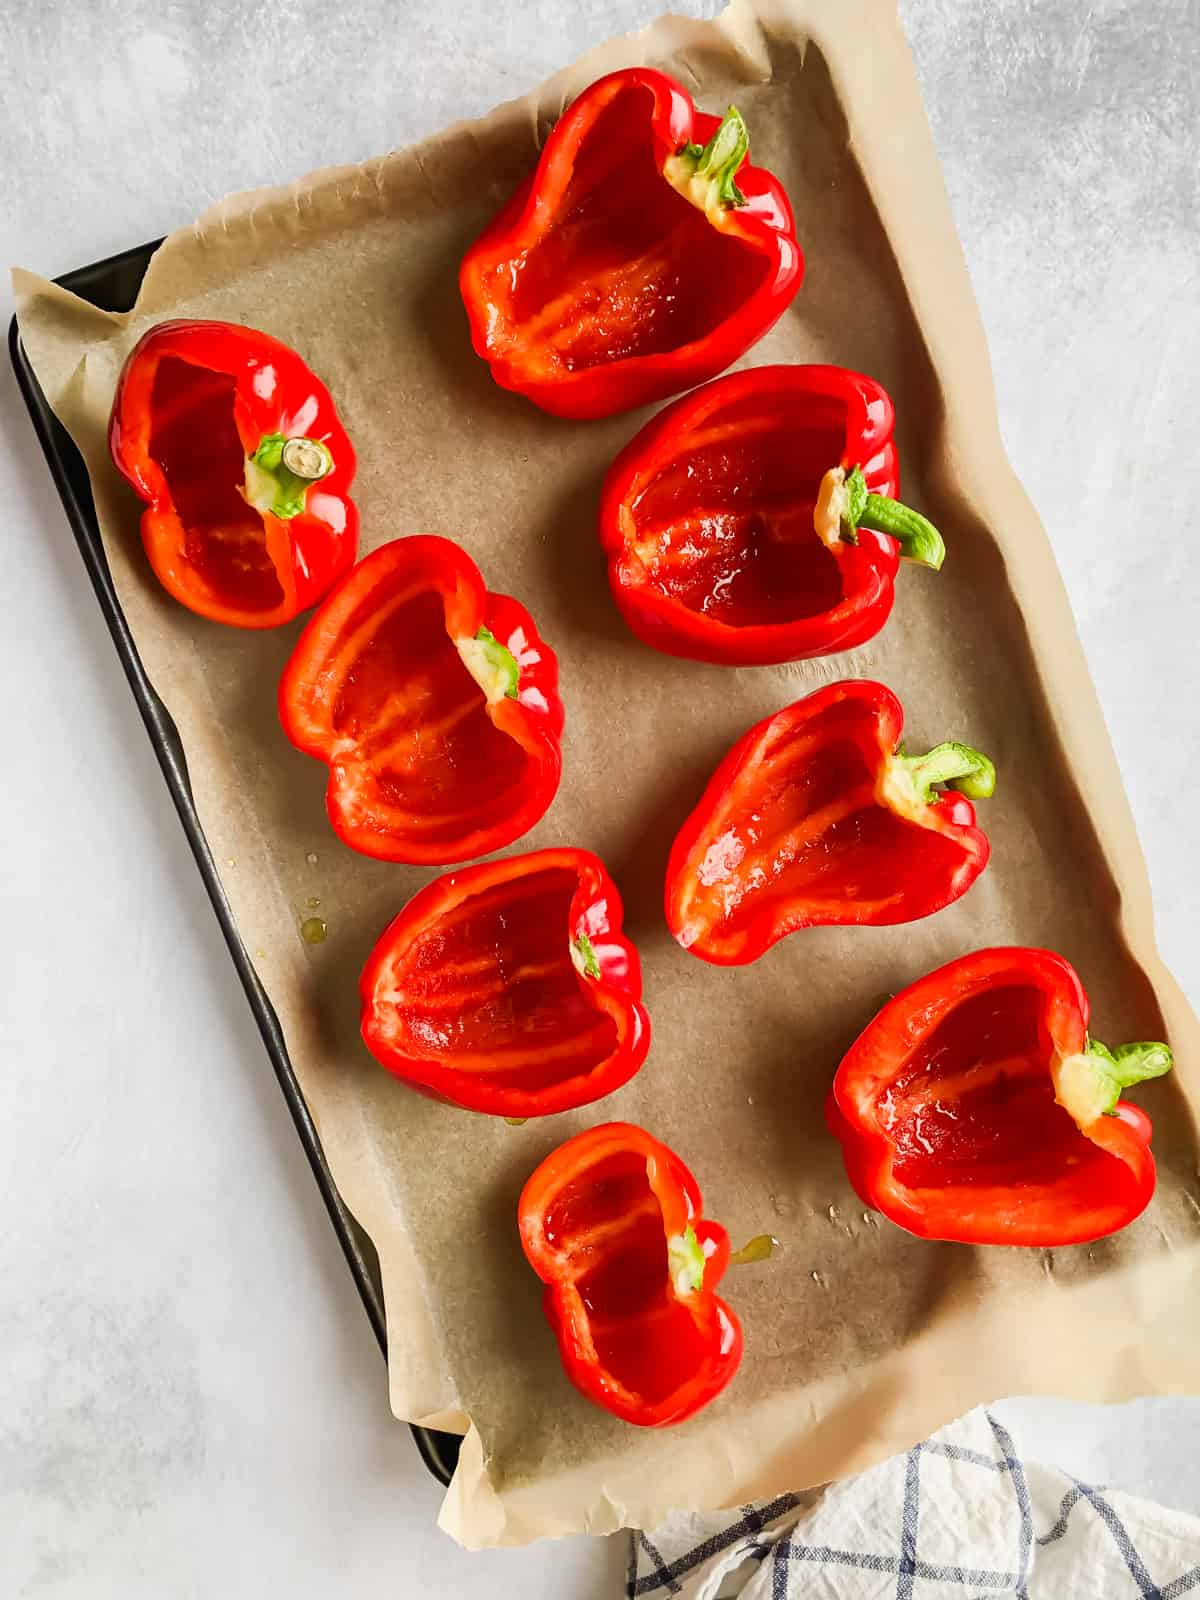 Bell peppers on a baking sheet